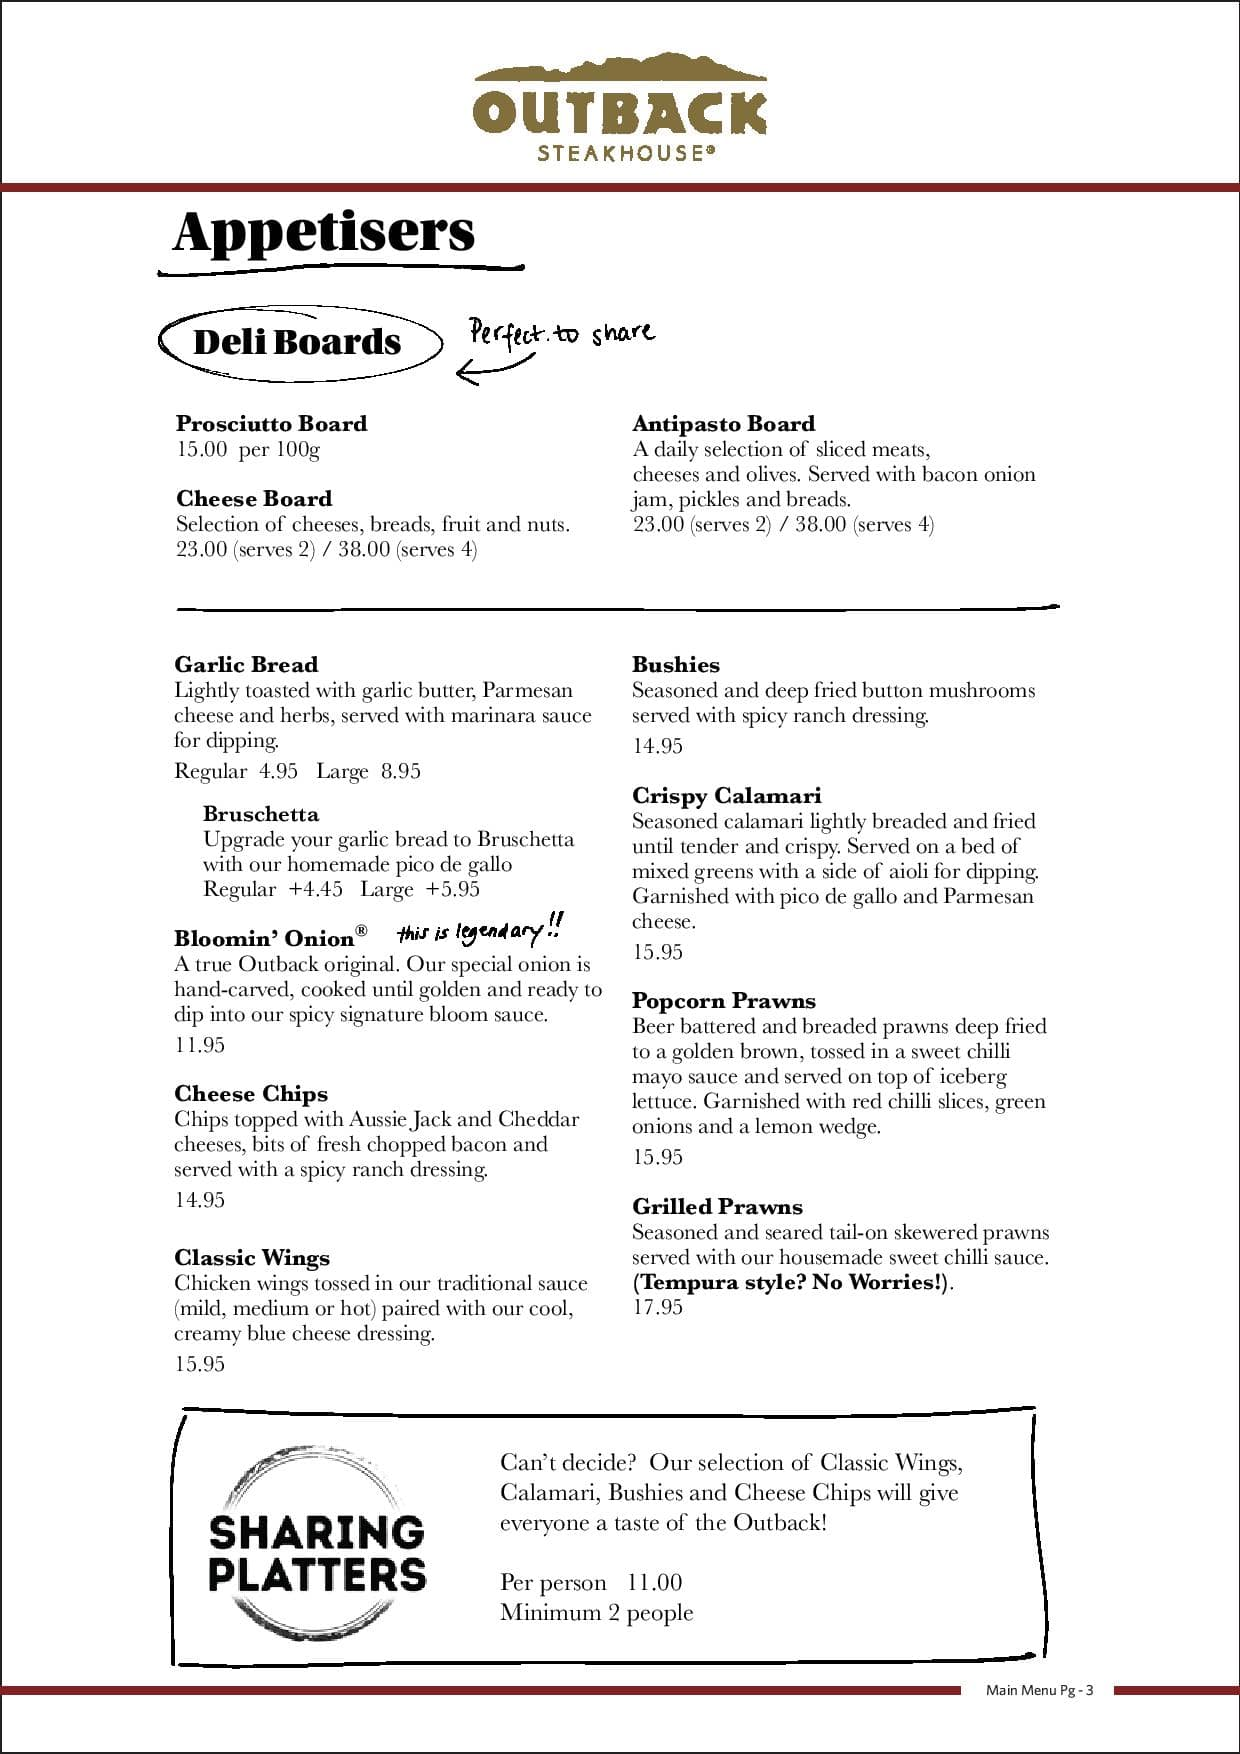 outback steakhouse menu, menu for outback steakhouse, north